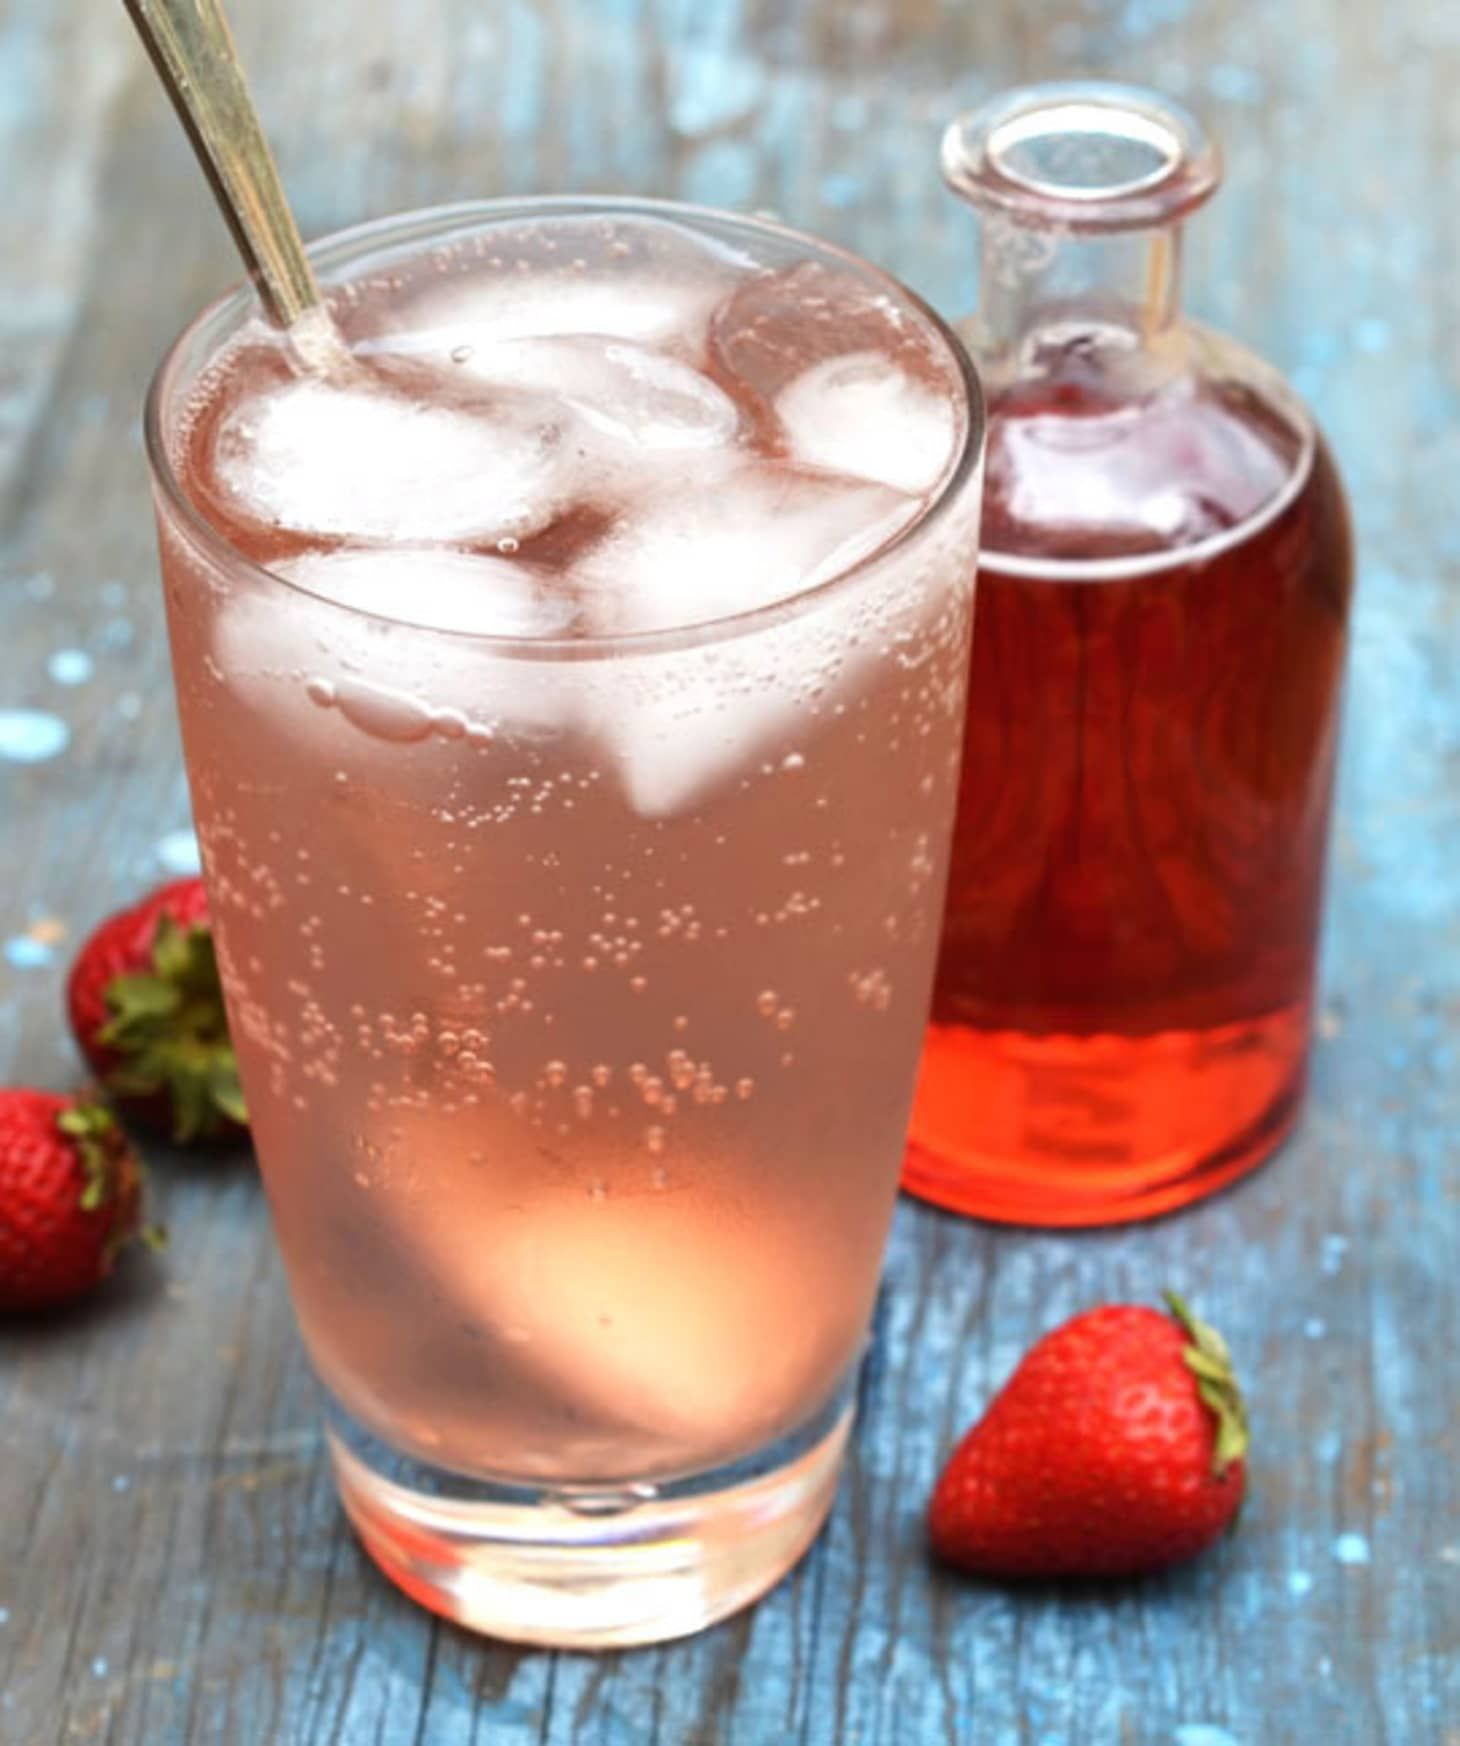 How To Make A Fruit Shrub Syrup Recipe In 2020 Fruit Shrub Shrub Recipe Syrup Recipe